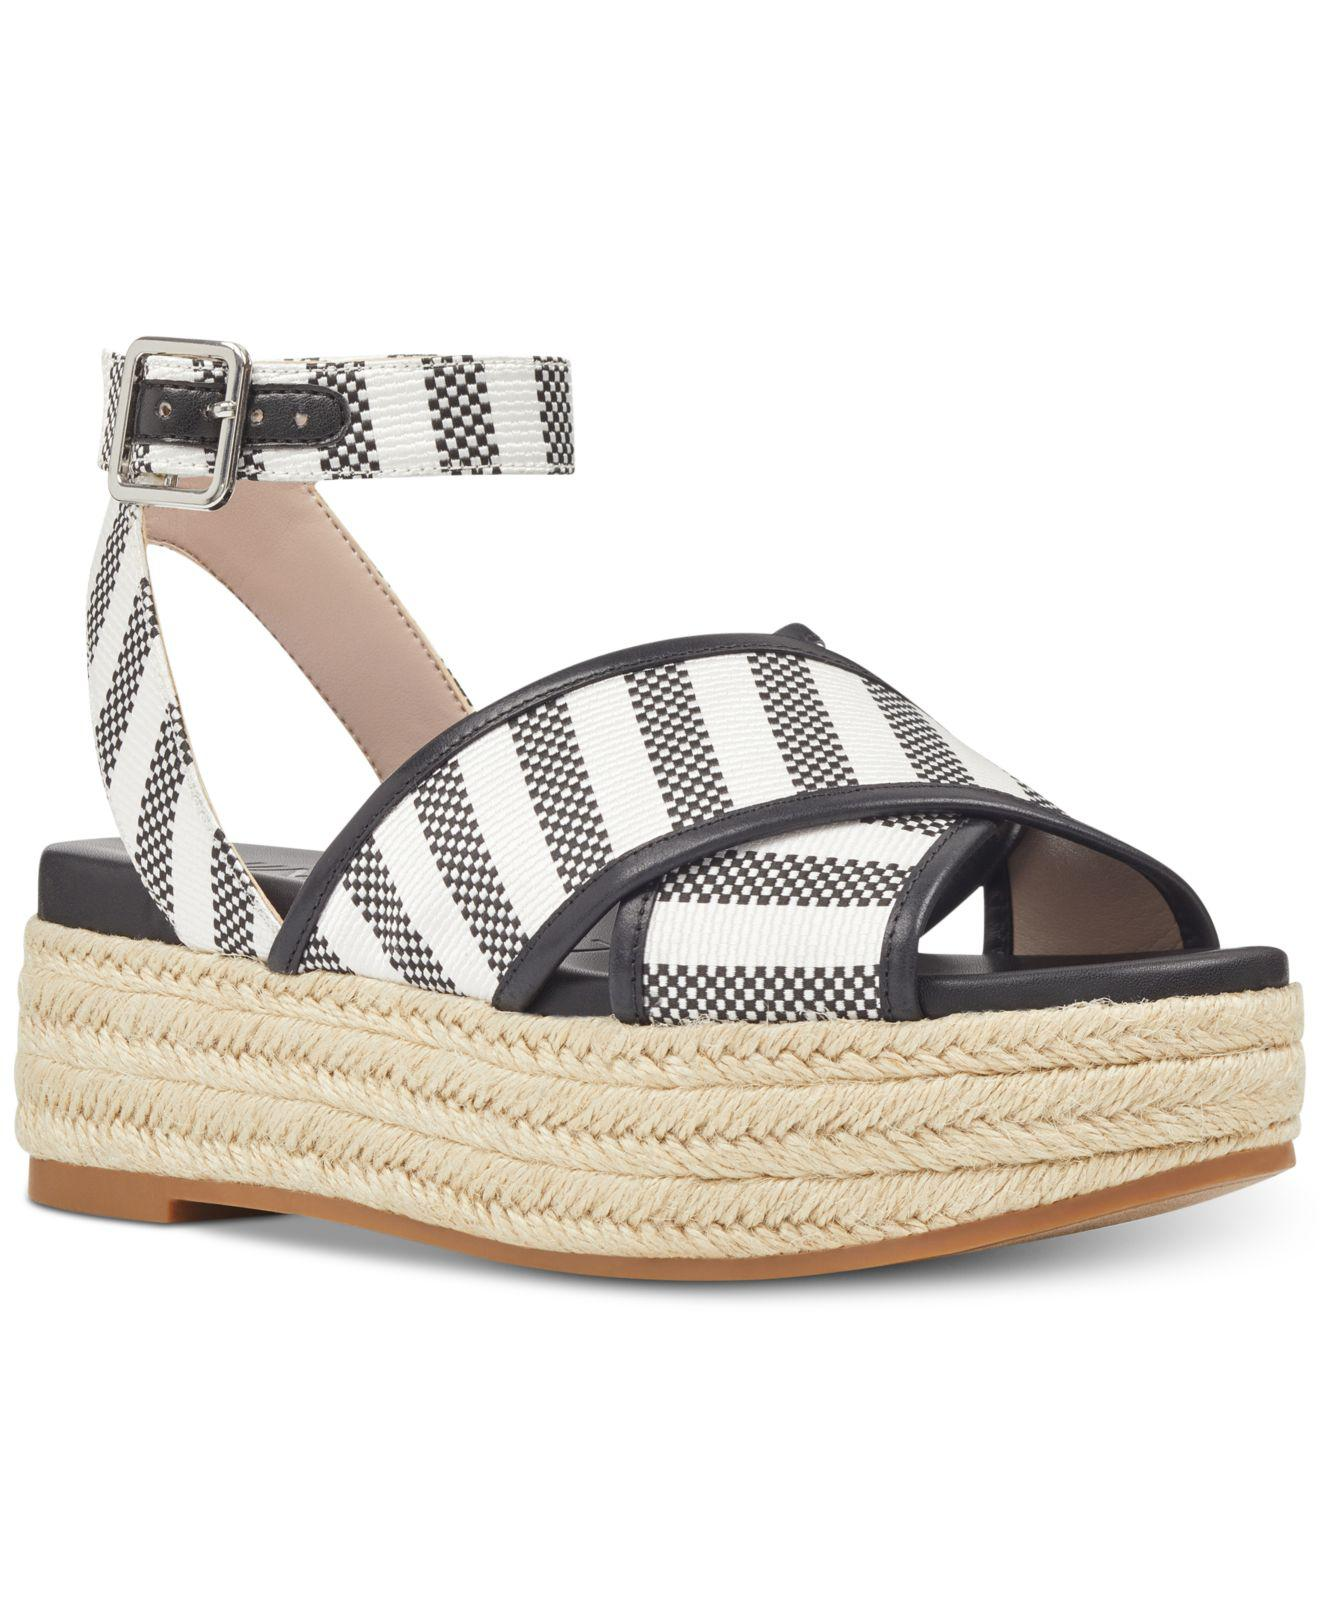 2a687994e869 Lyst - Nine West Showrunner Wedge Sandals